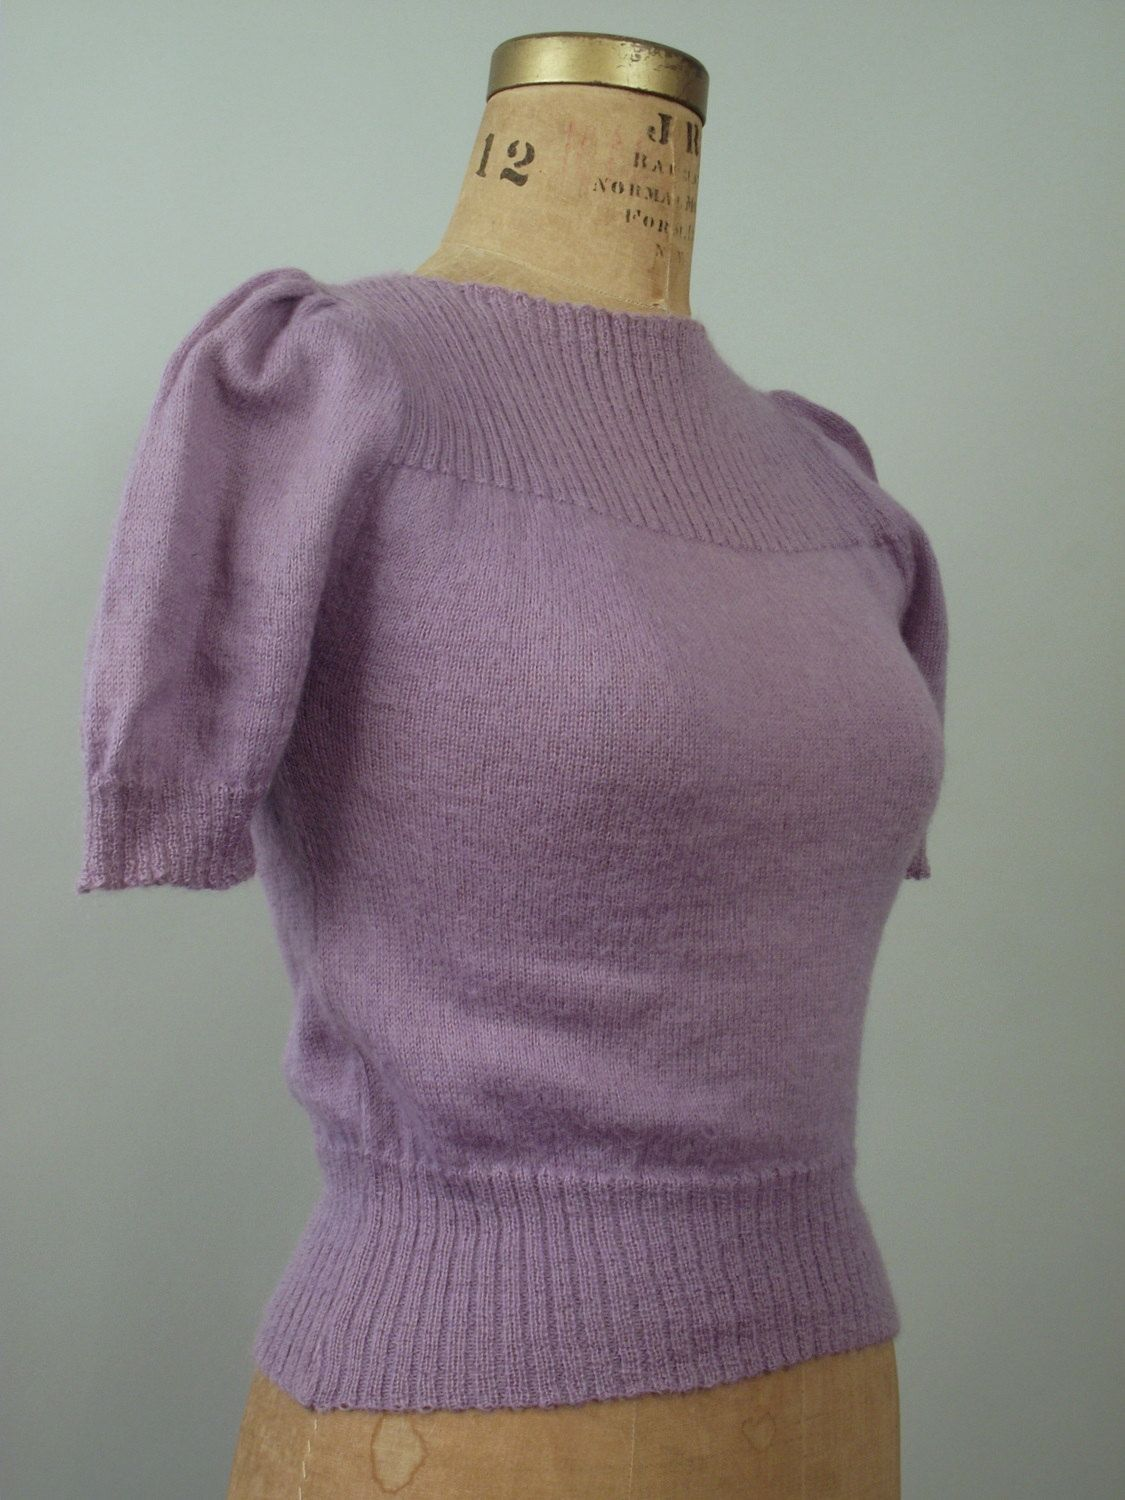 b1c1f1be07 1940s Sweater   40s Knit Sweater Puff Sleeves Lavender - LOVE!!!! neck